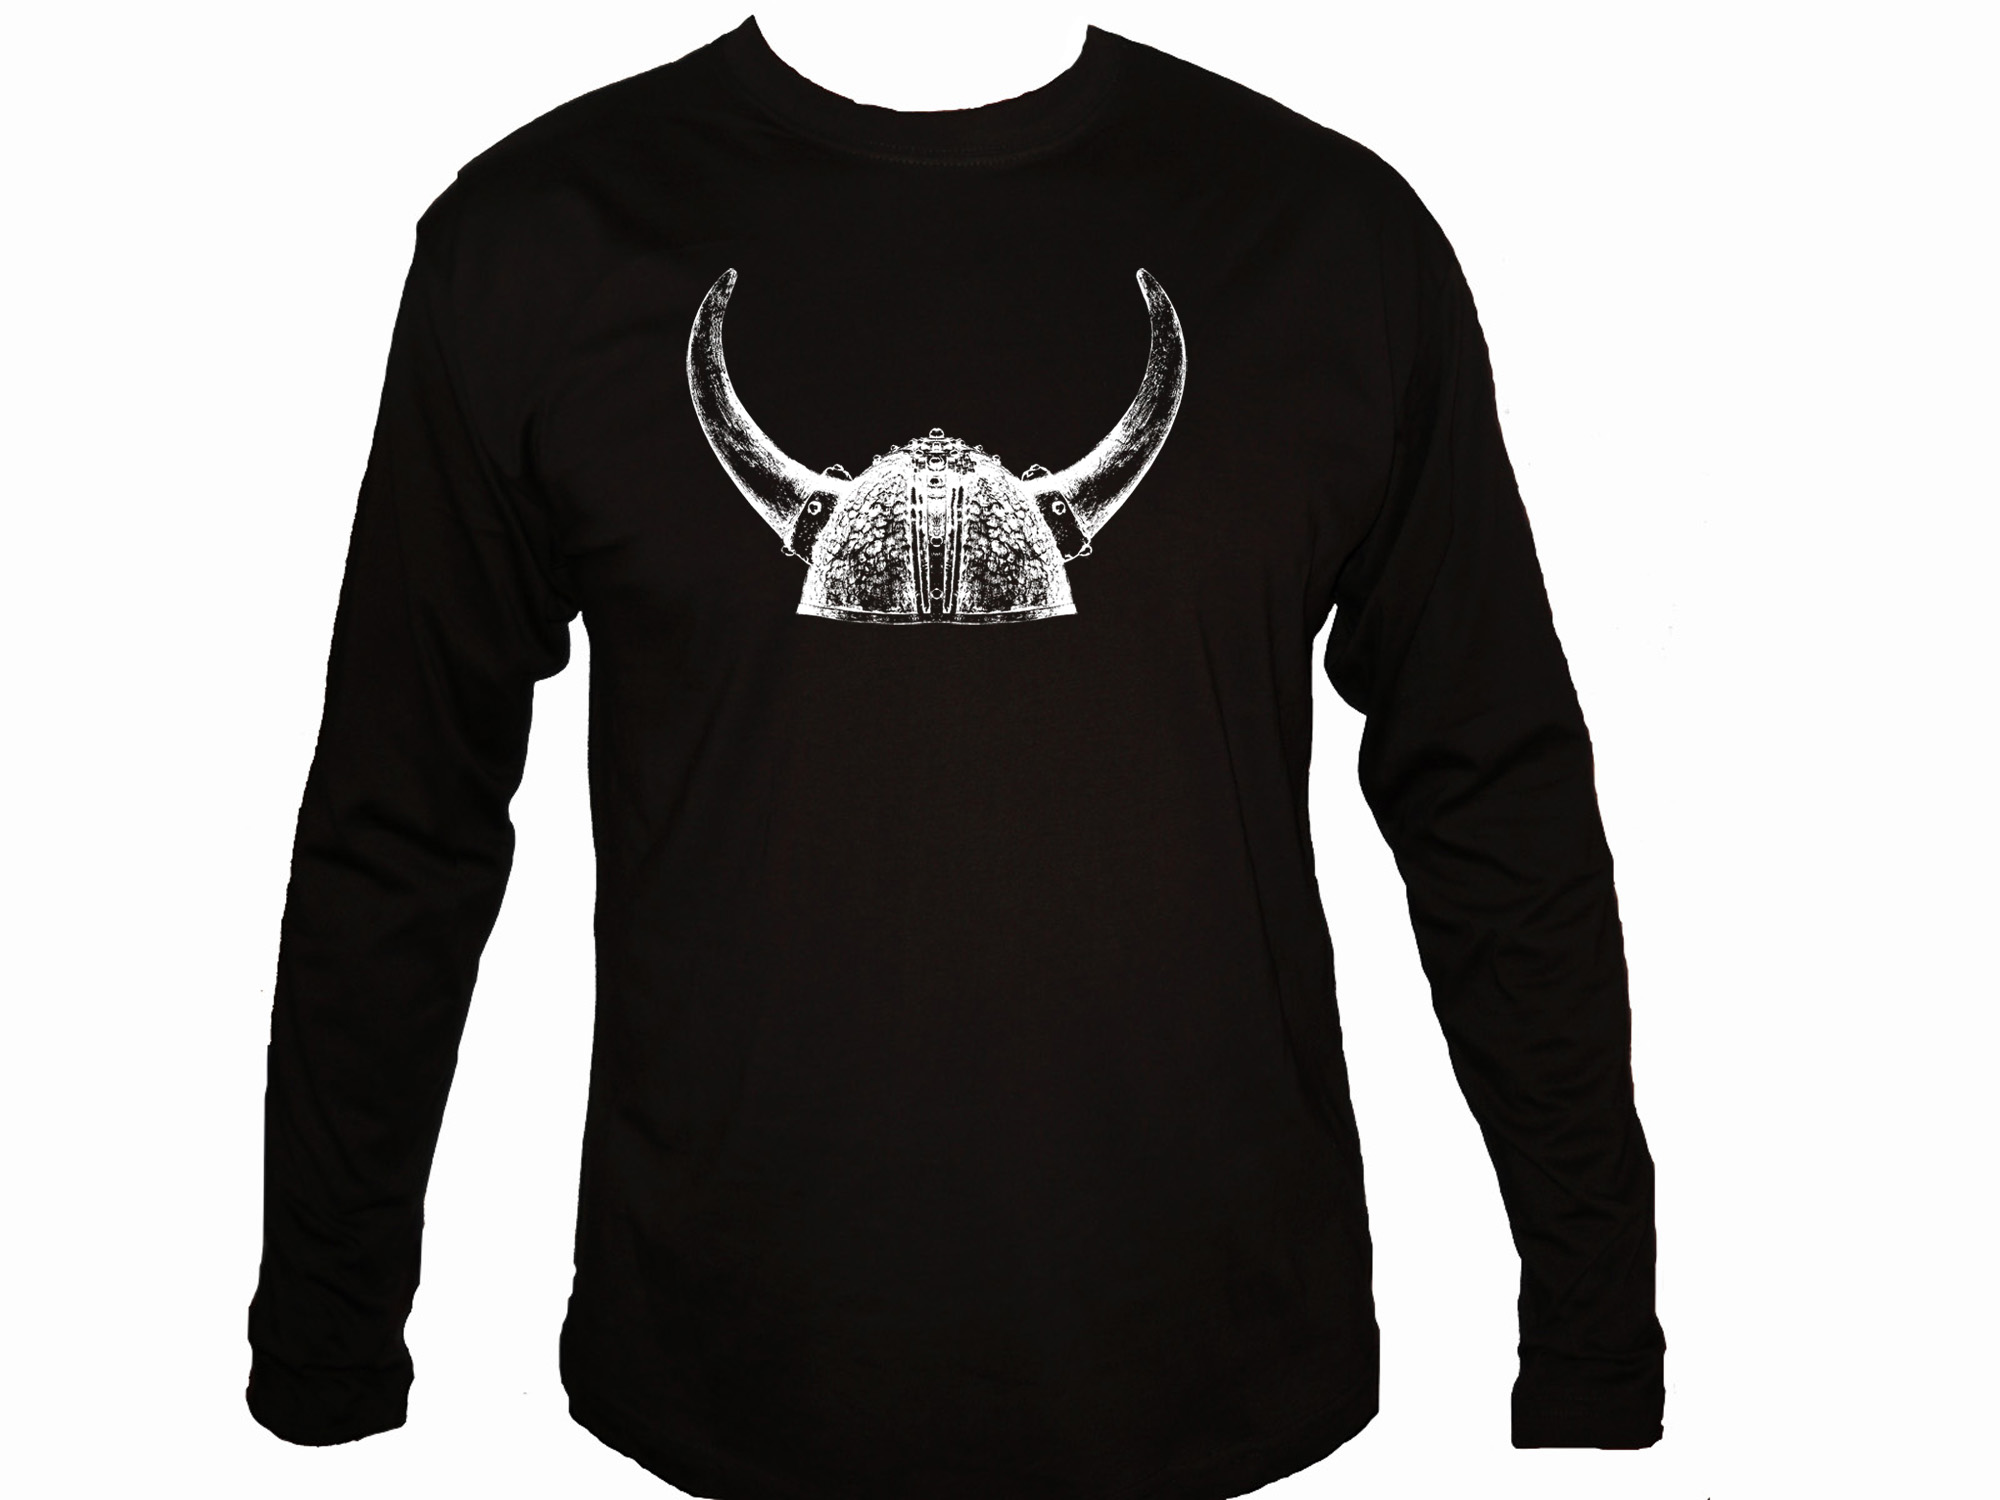 Thor hammer items t shirts,hoodies,tank tops,singlets My